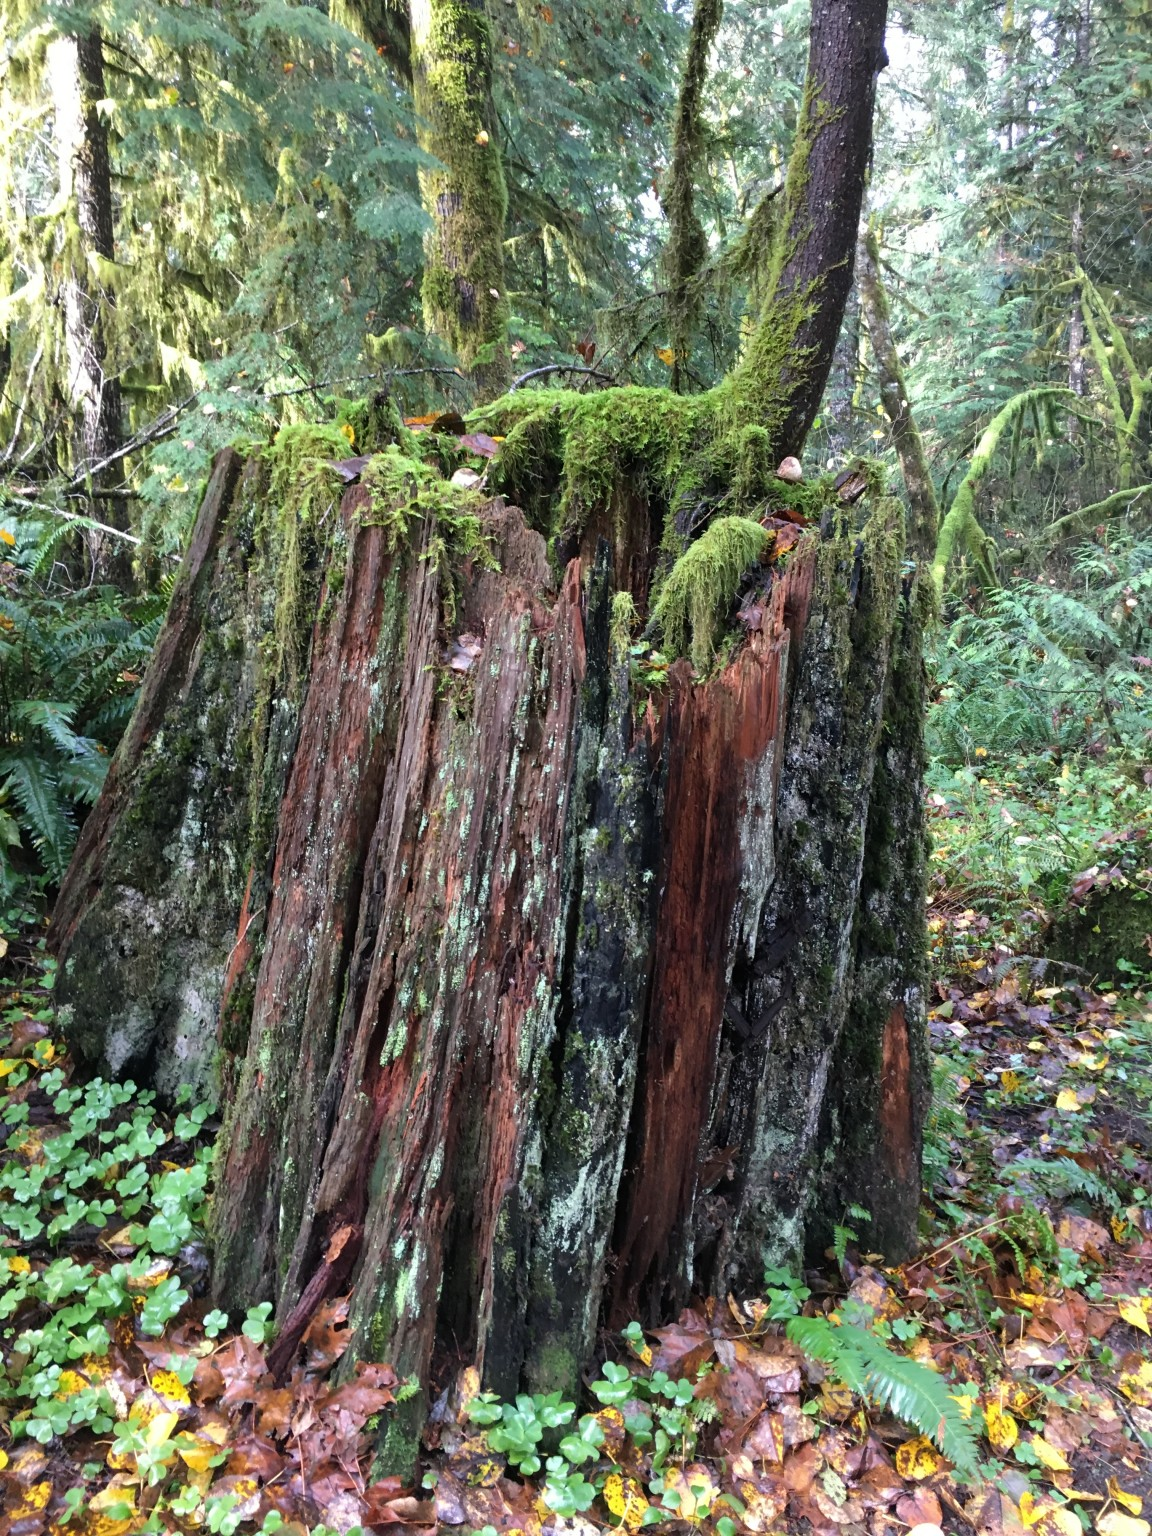 Giant tree stump teaming with life.